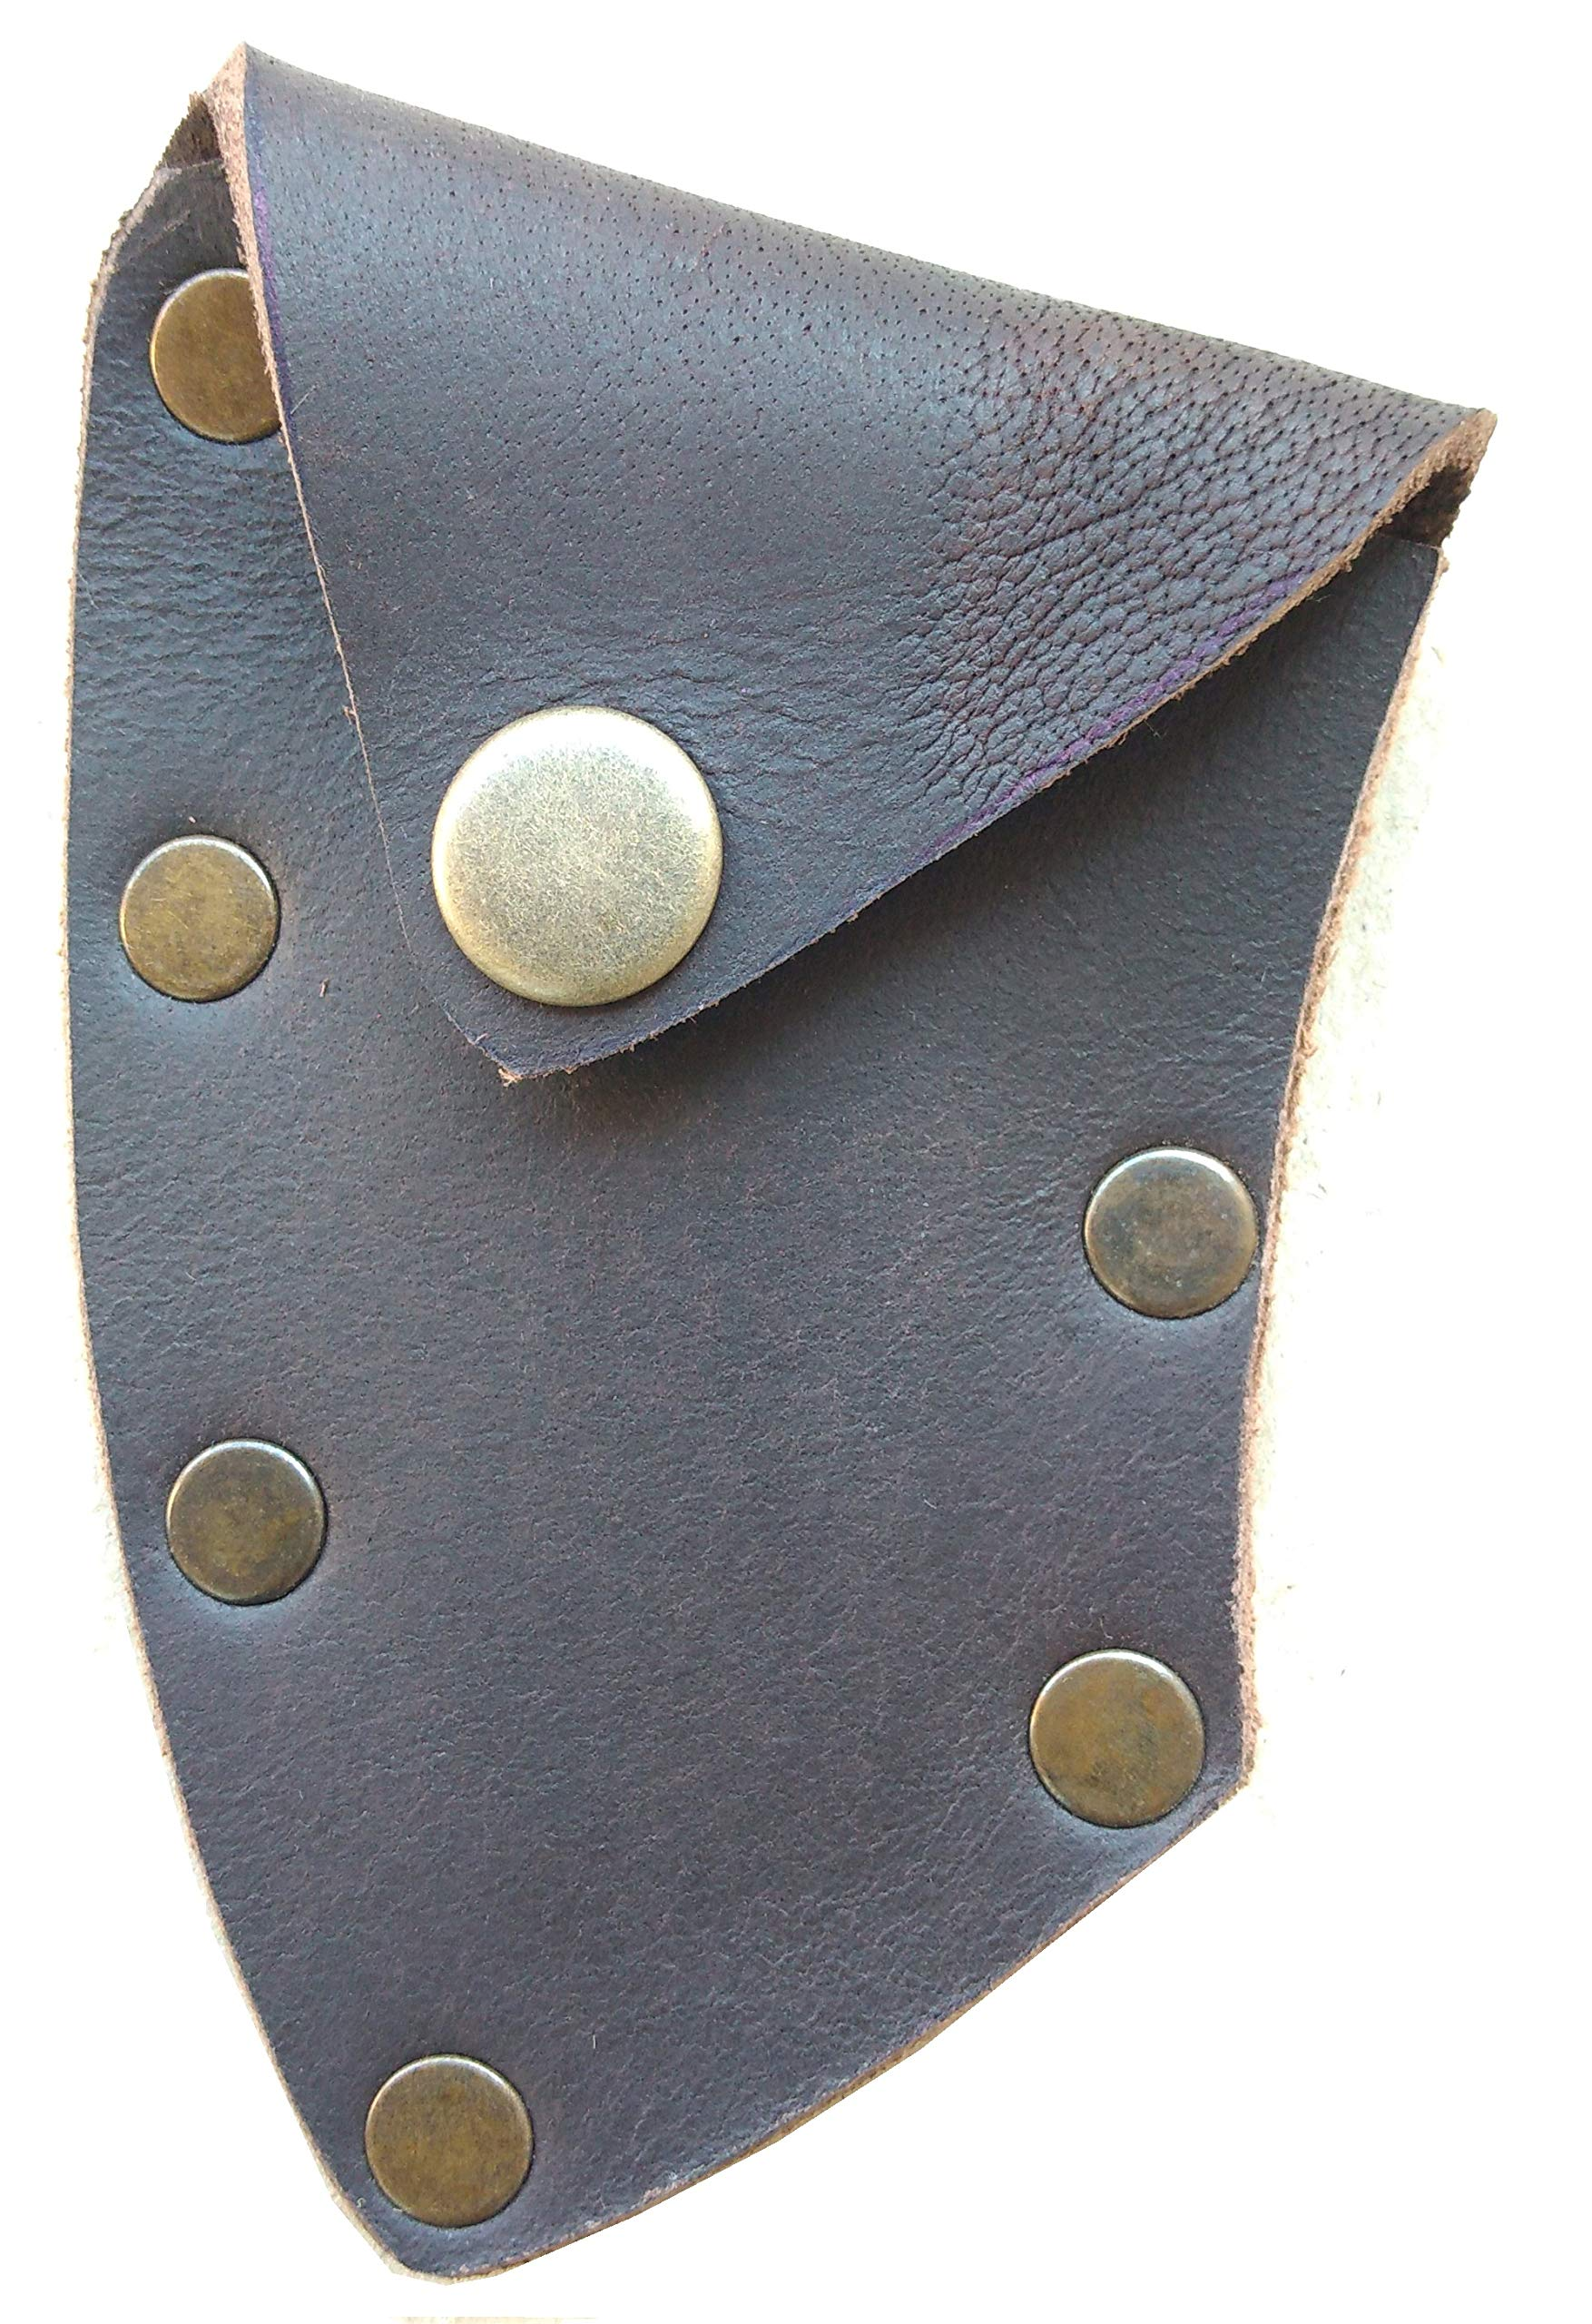 Leather sheath for the small axe by mapsyst (Image #1)